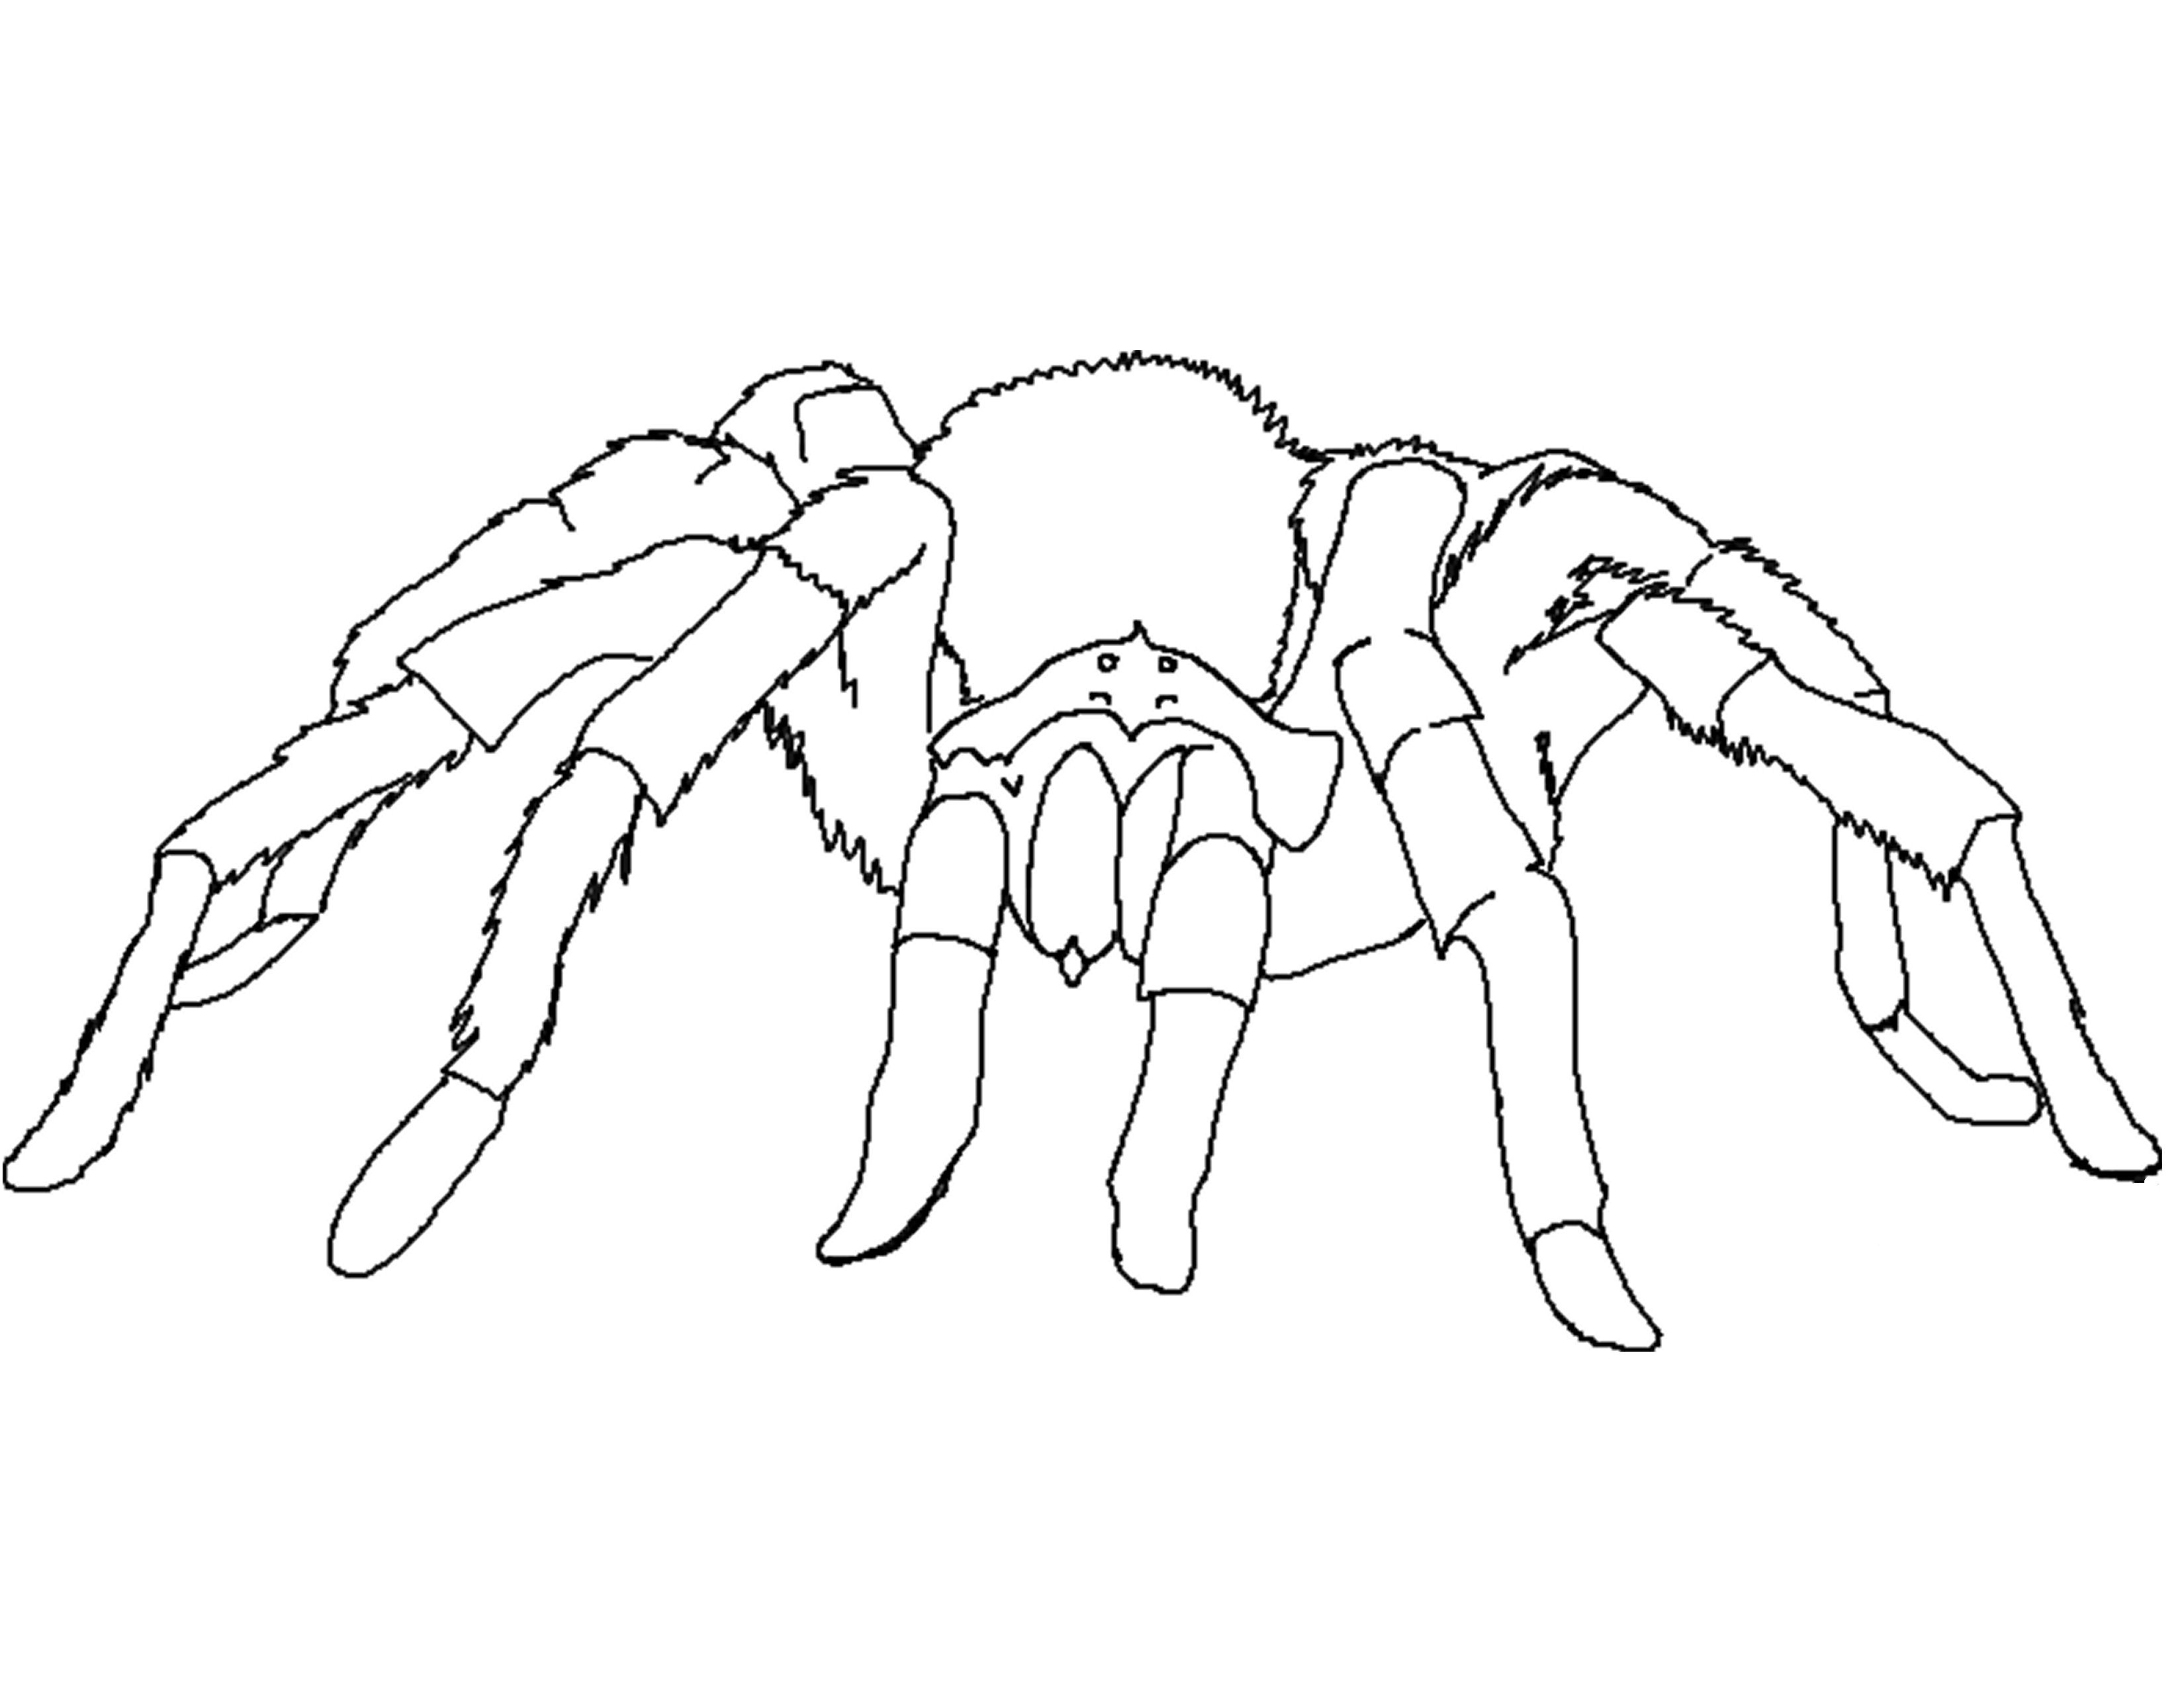 black widow spider coloring page free printable spider coloring pages for kids page spider coloring black widow